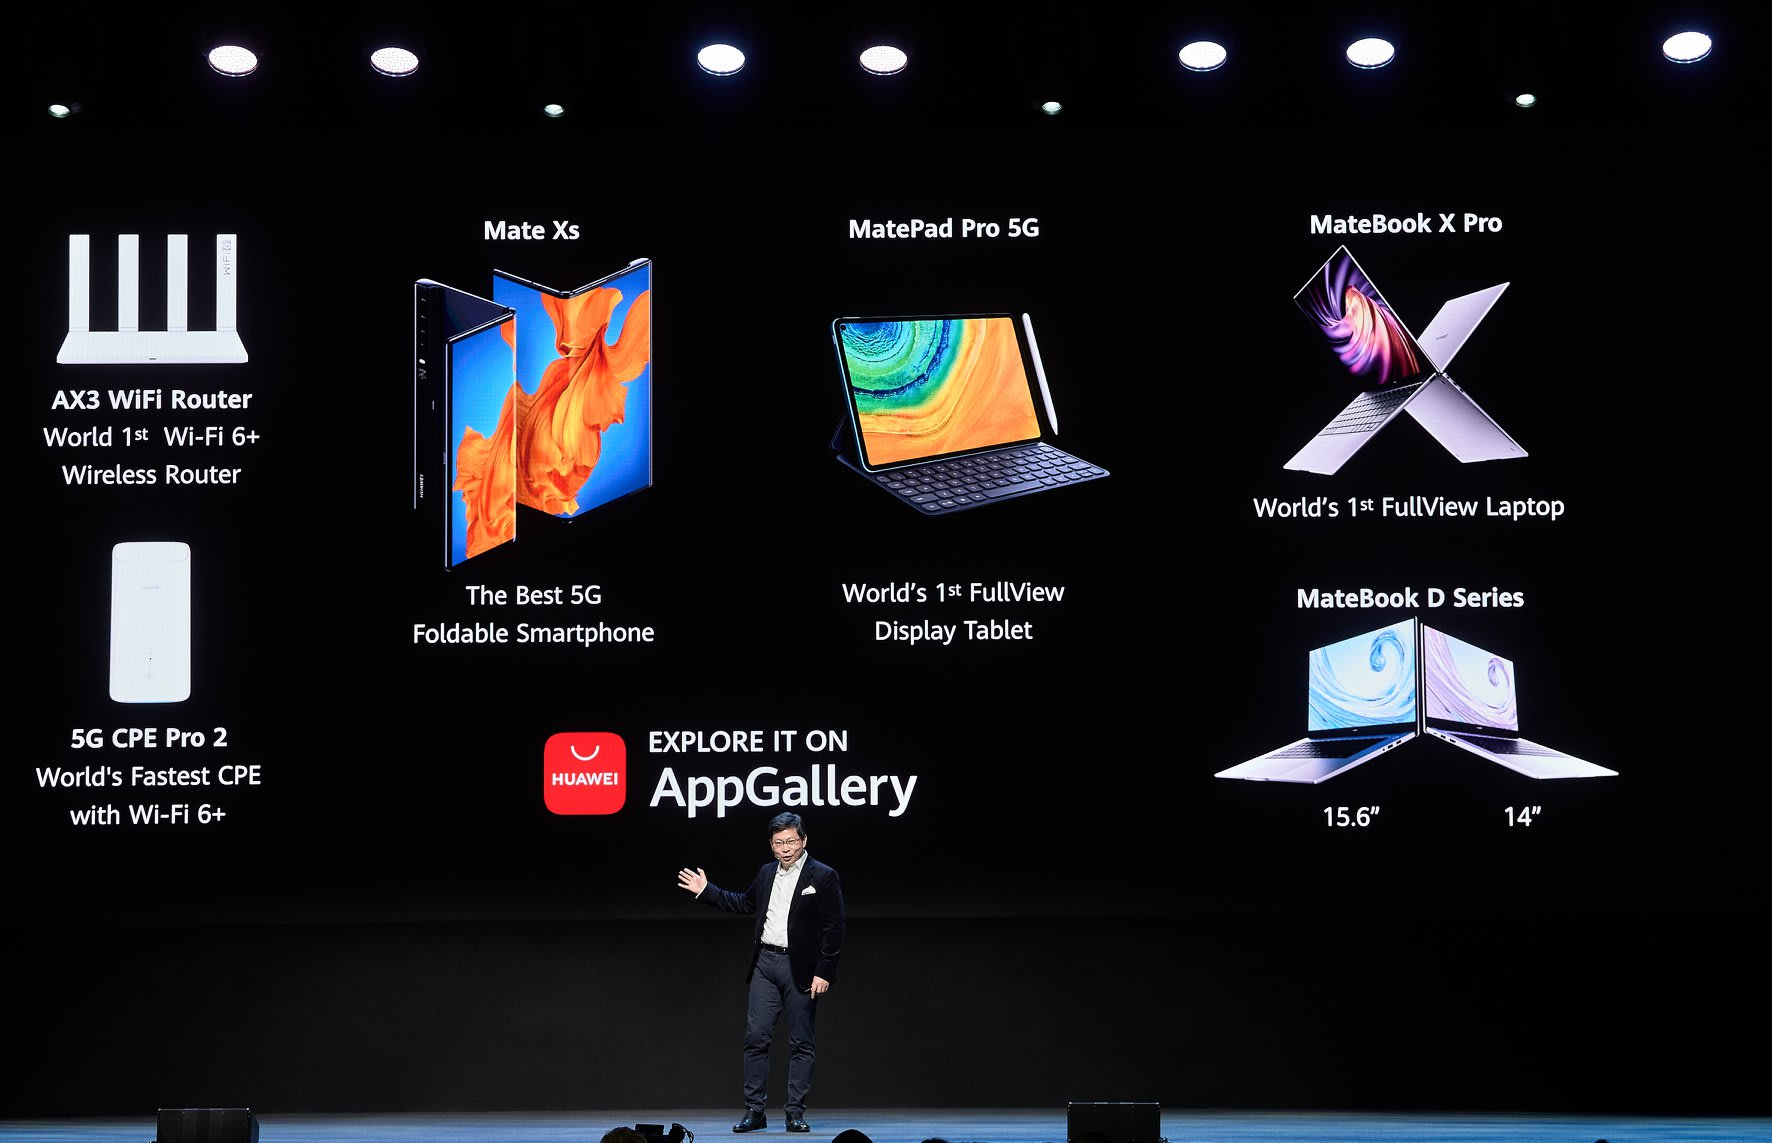 Huawei Consumer BG CEO Richard Yu presenting new products